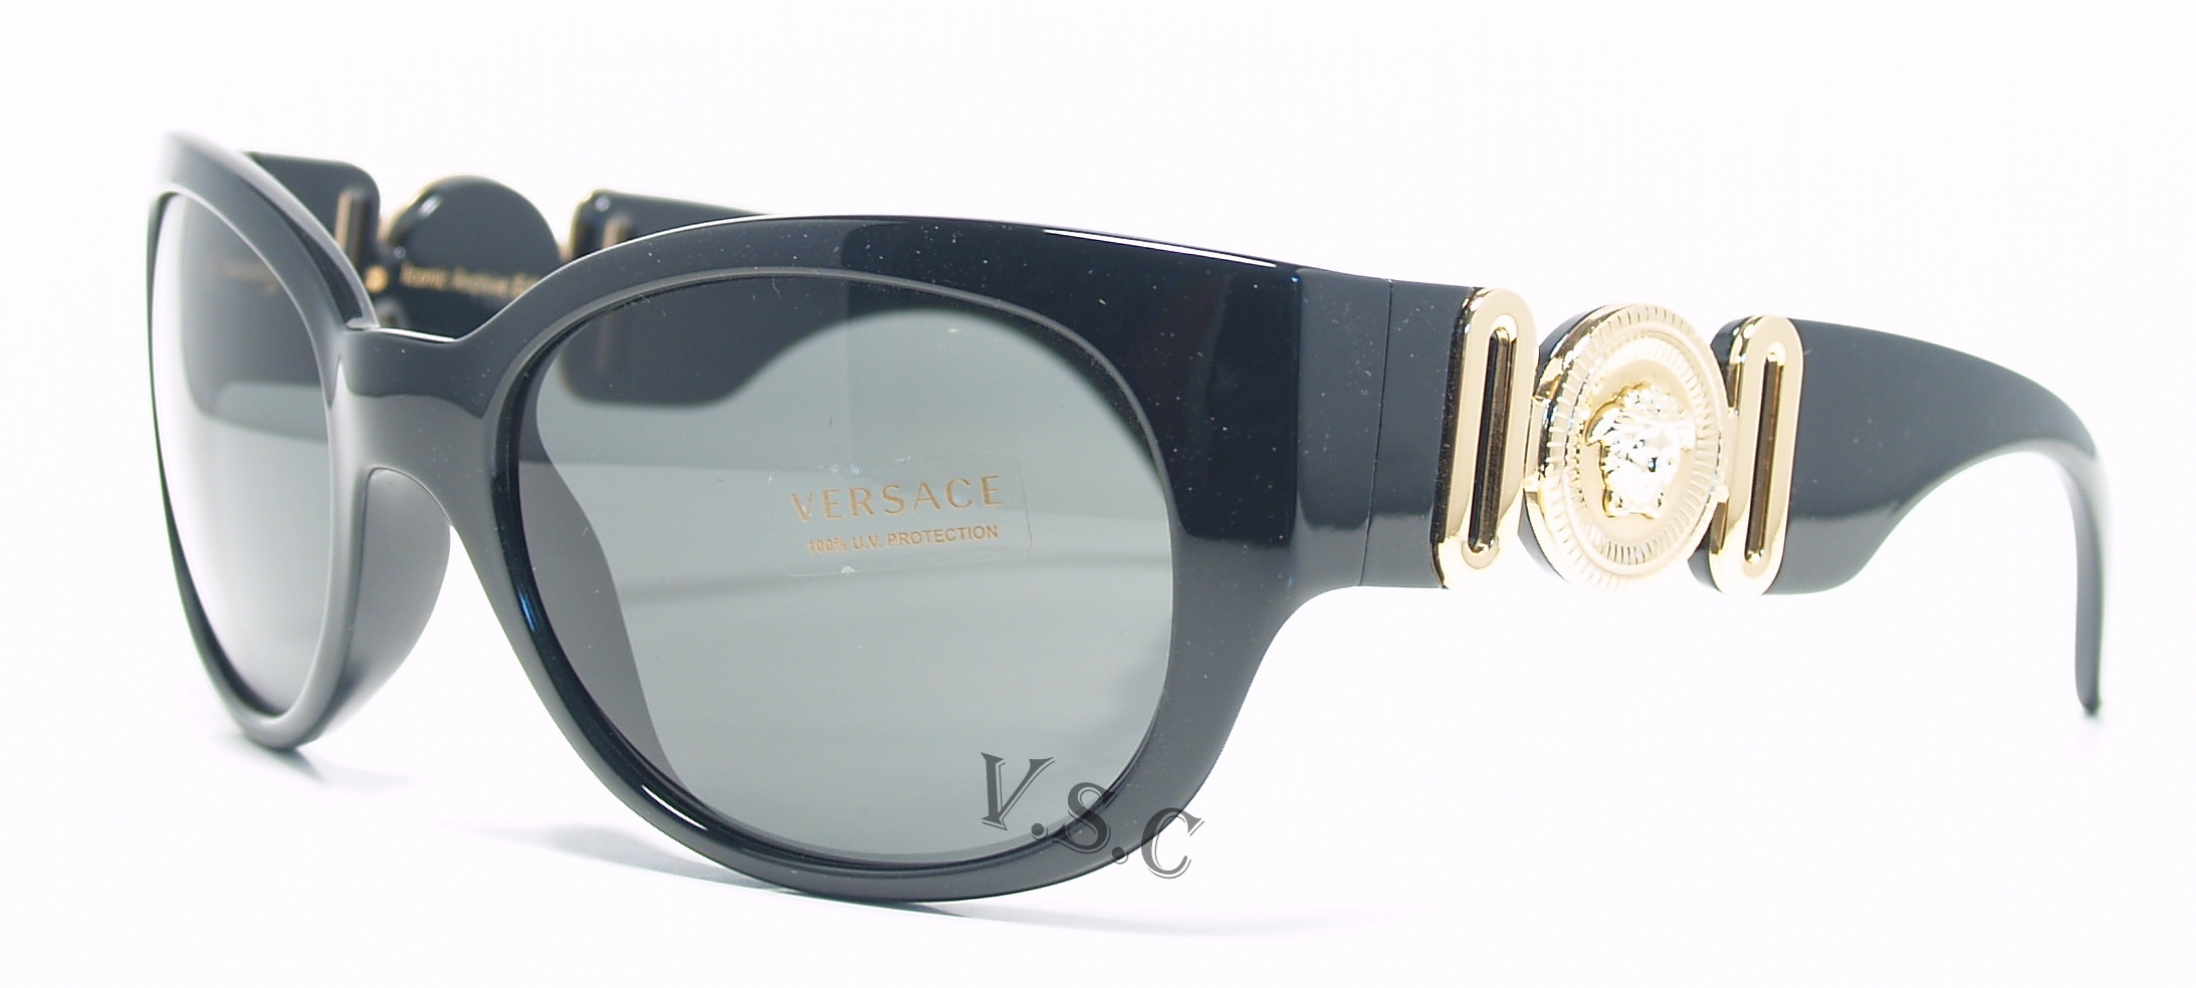 a4cd01bfe5c9 Buy Versace Sunglasses directly from eyeglassesdepot.com